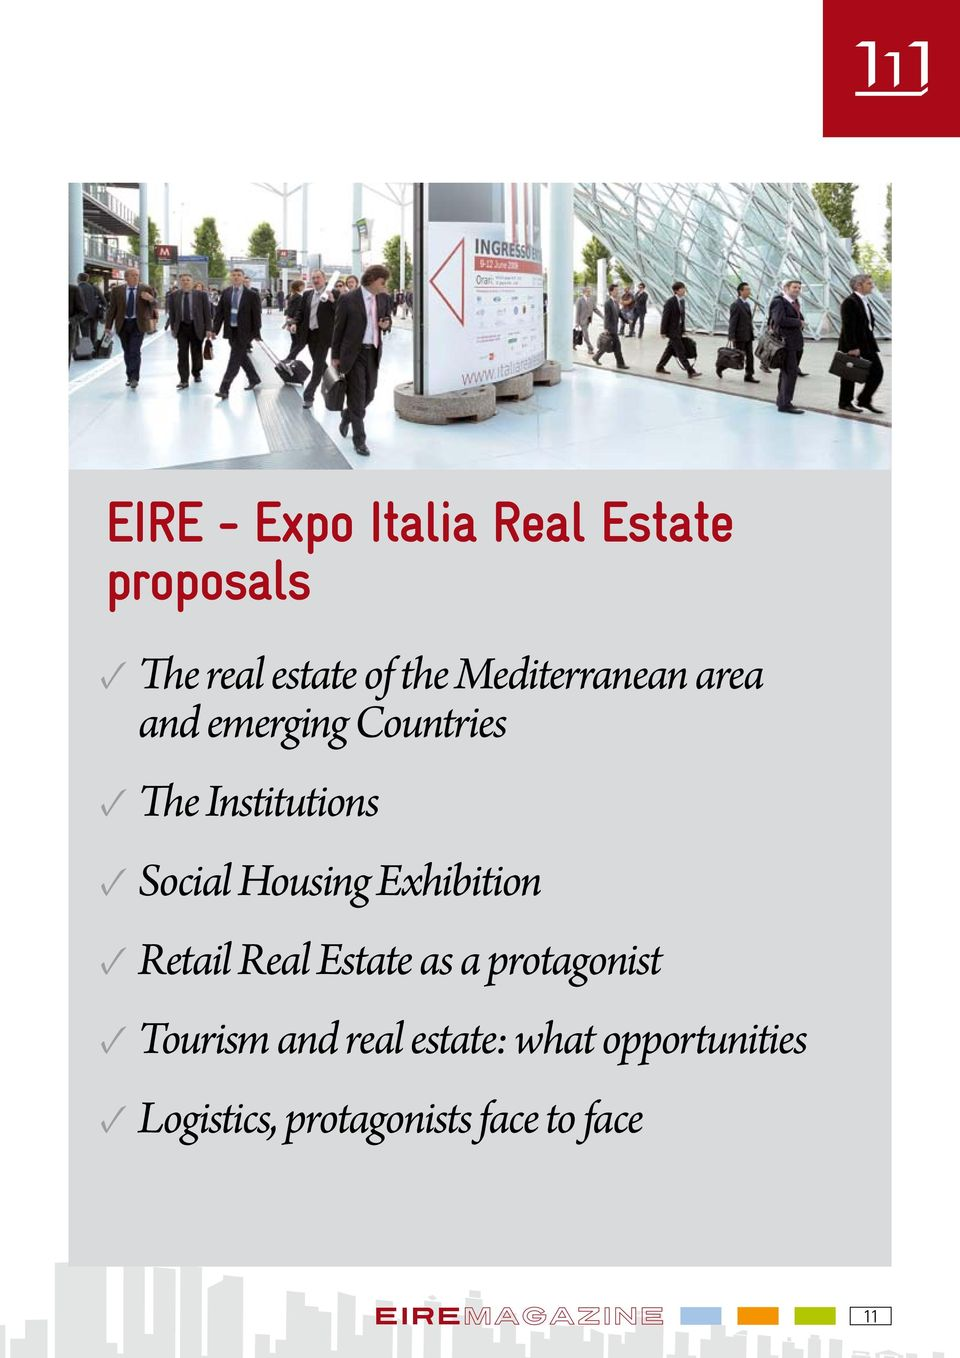 Housing Exhibition Retail Real Estate as a protagonist Tourism and